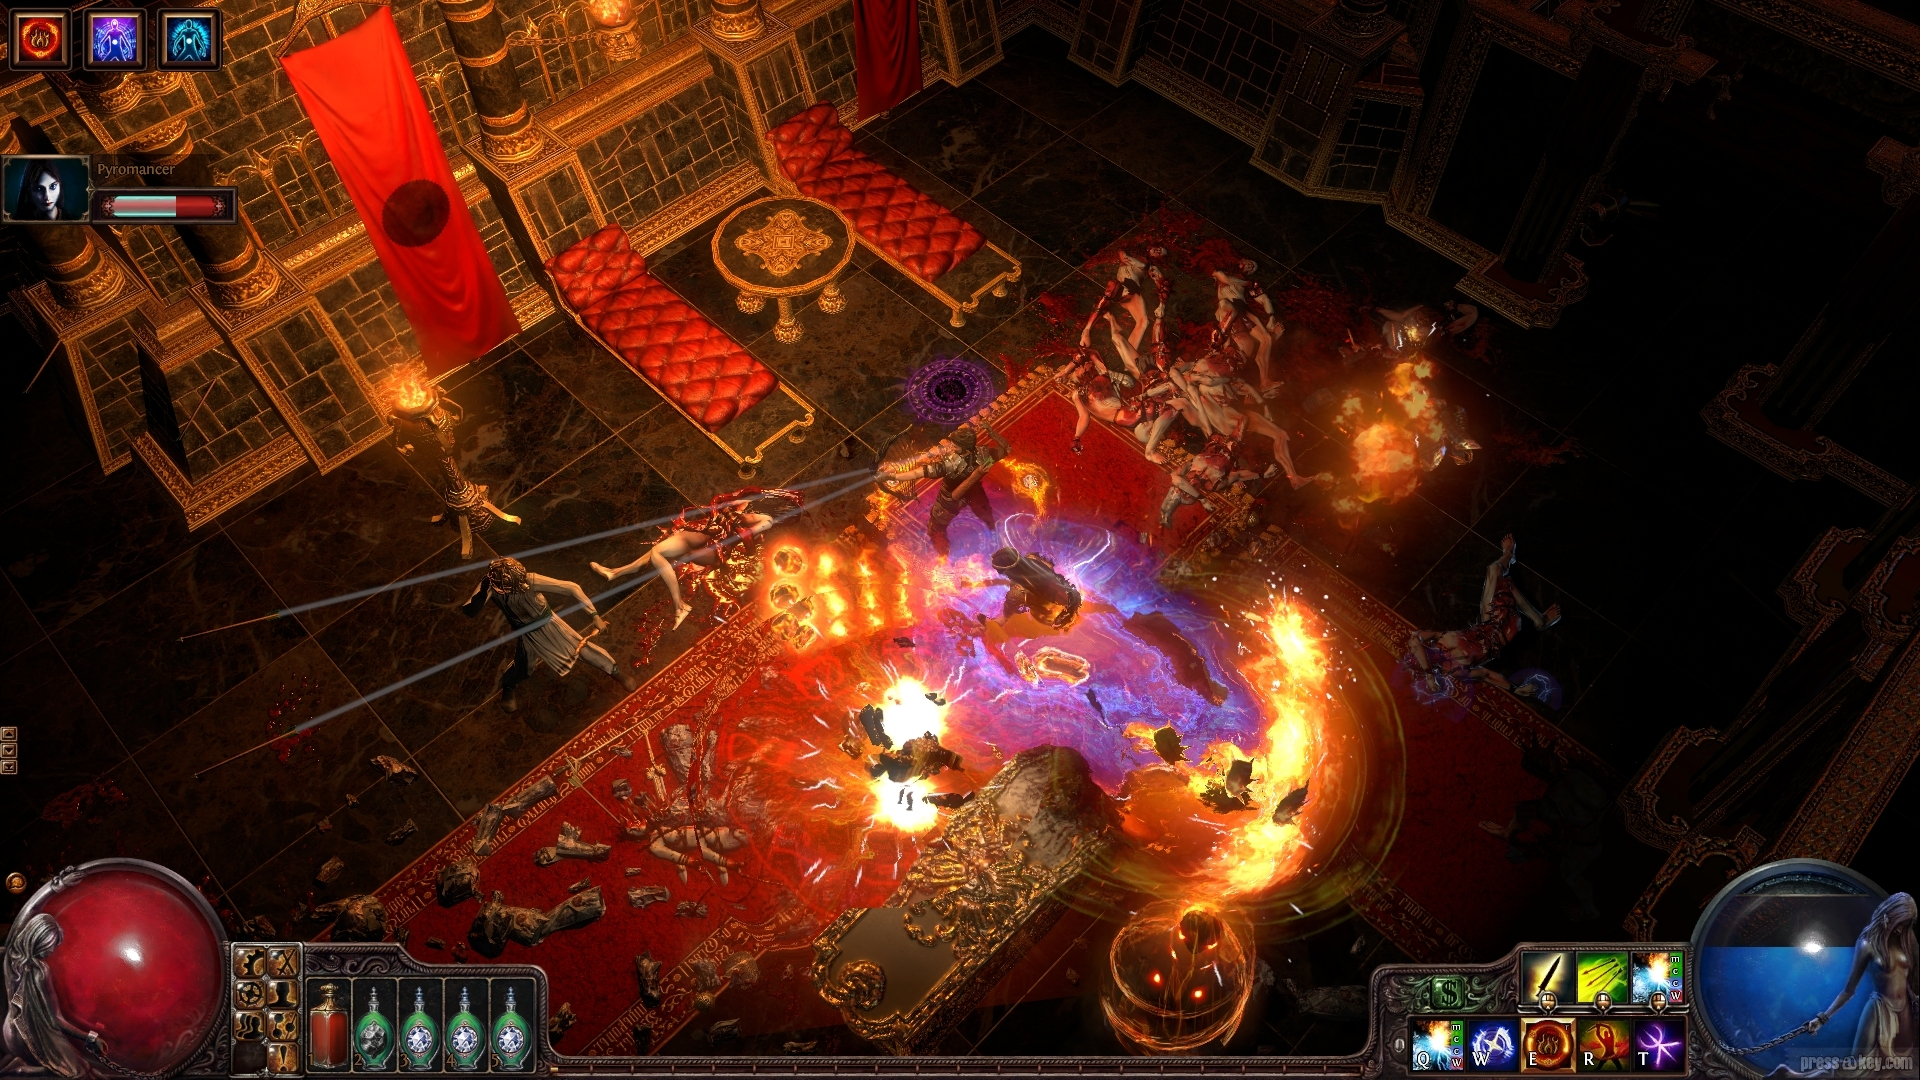 Several figures fire bows and spells at each other in a throne room, surrounded by firey explosions.